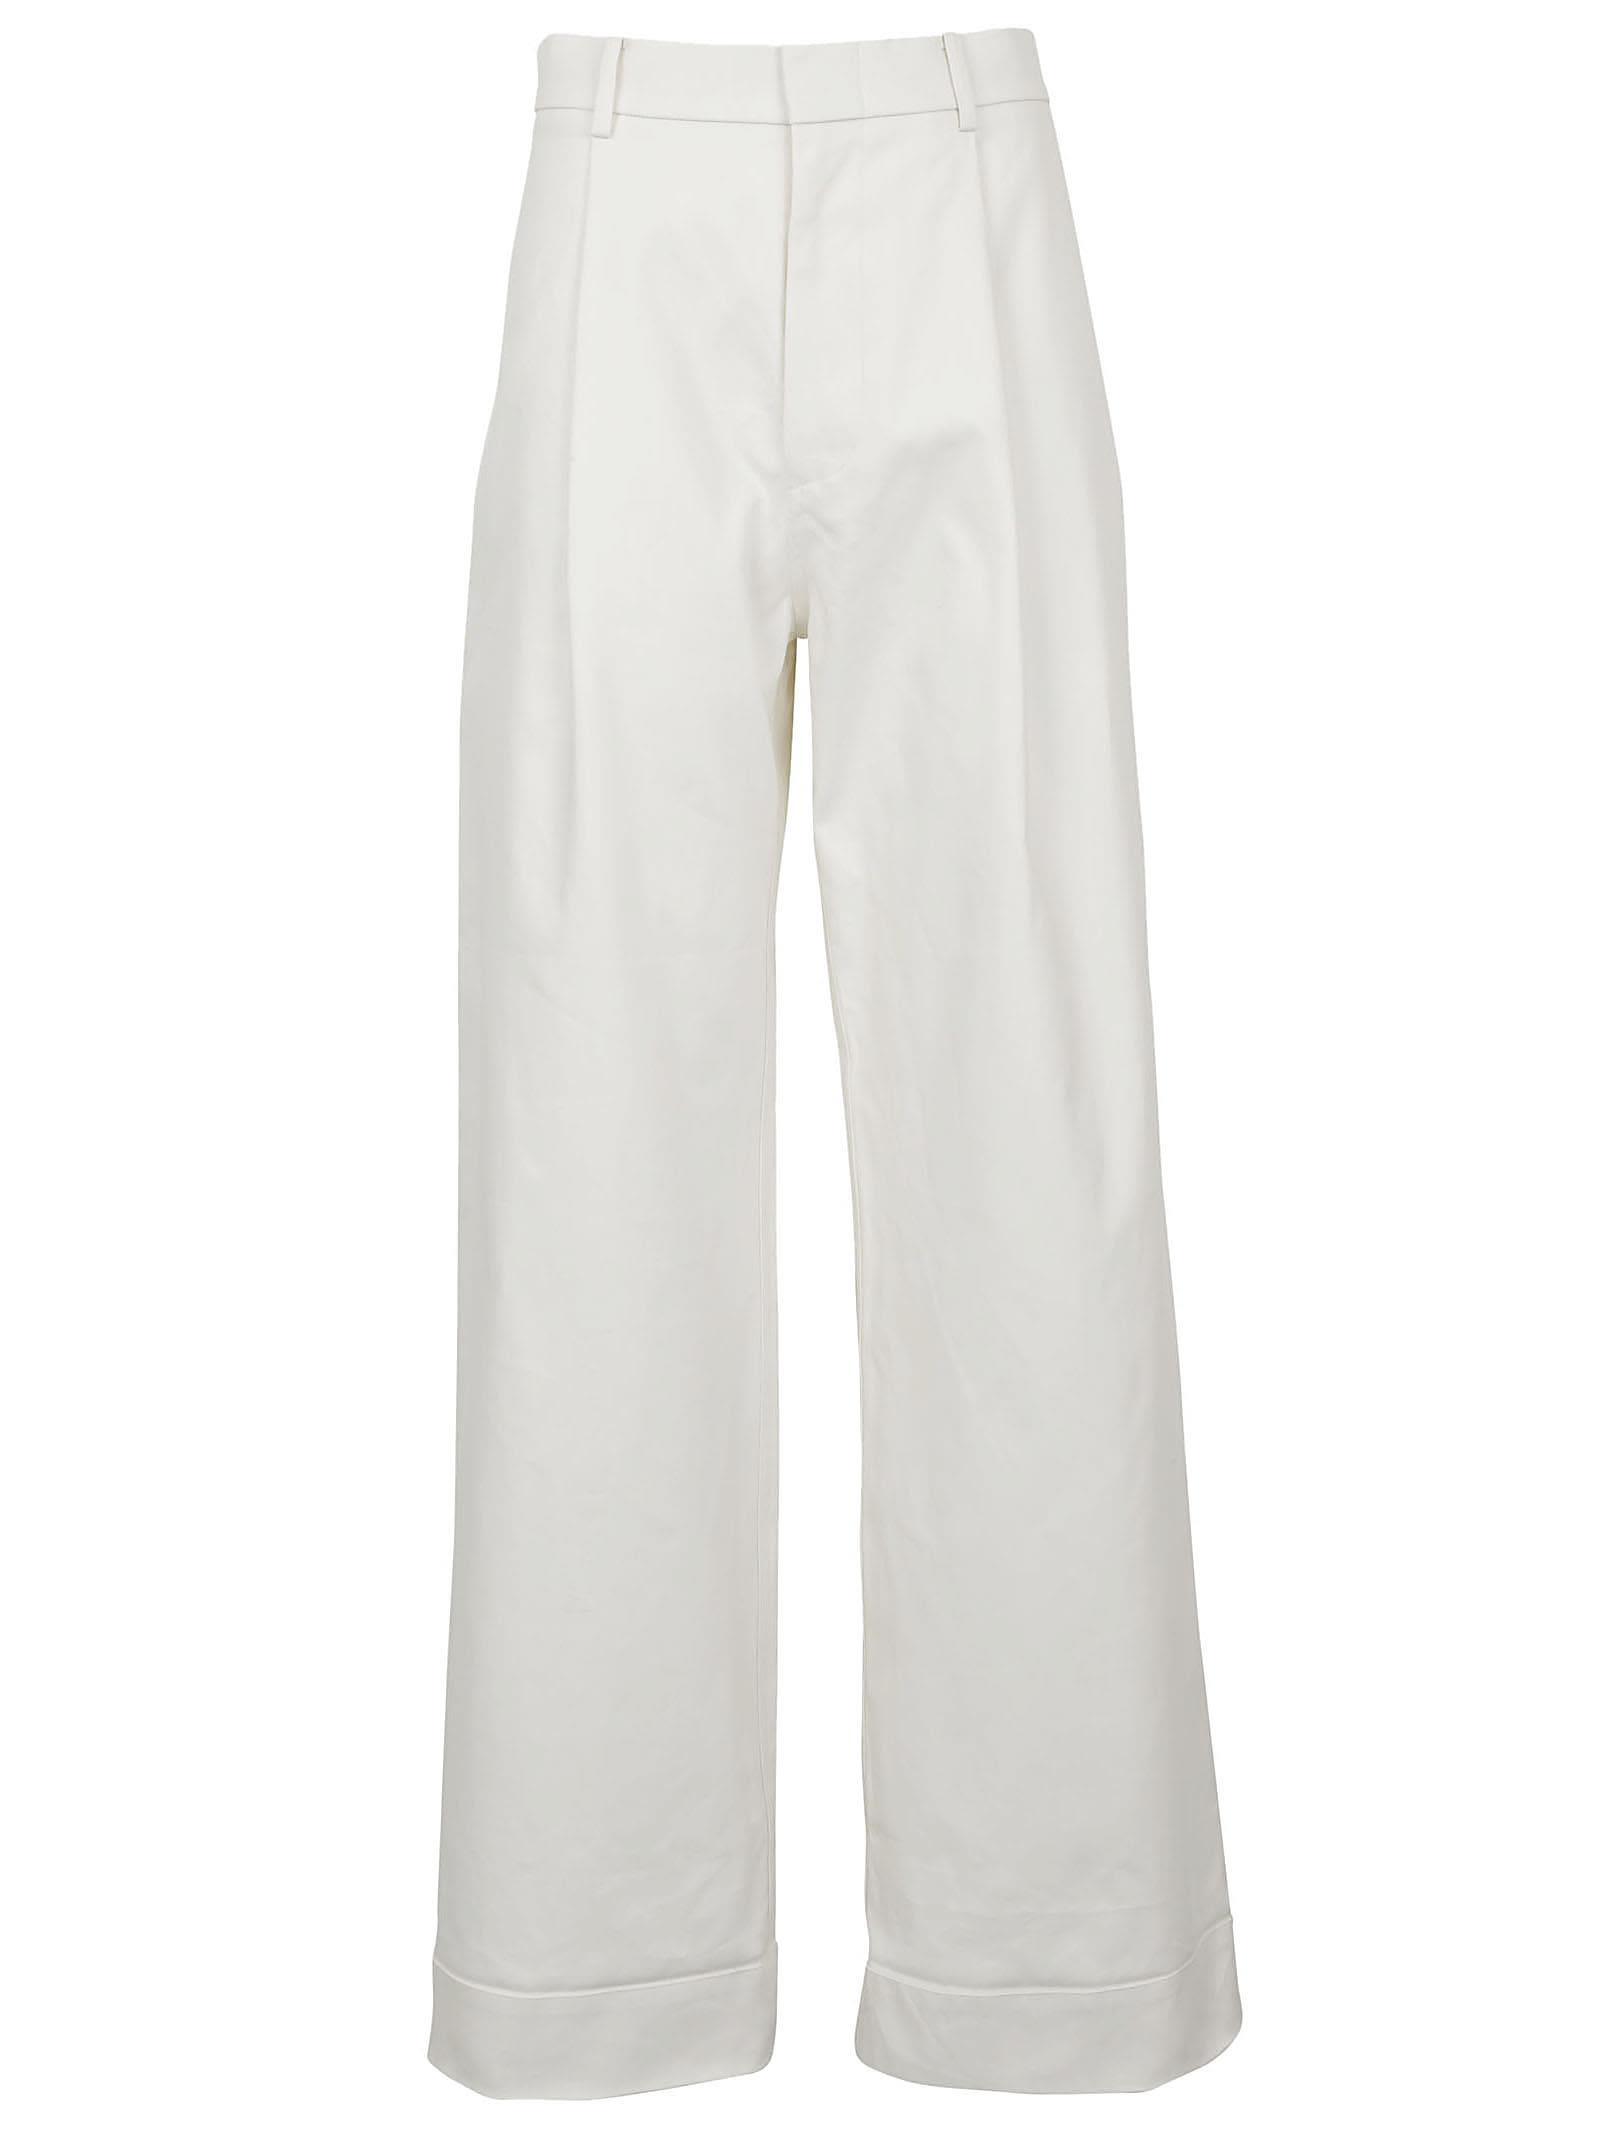 Sofie D' Hoore Providence Trousers